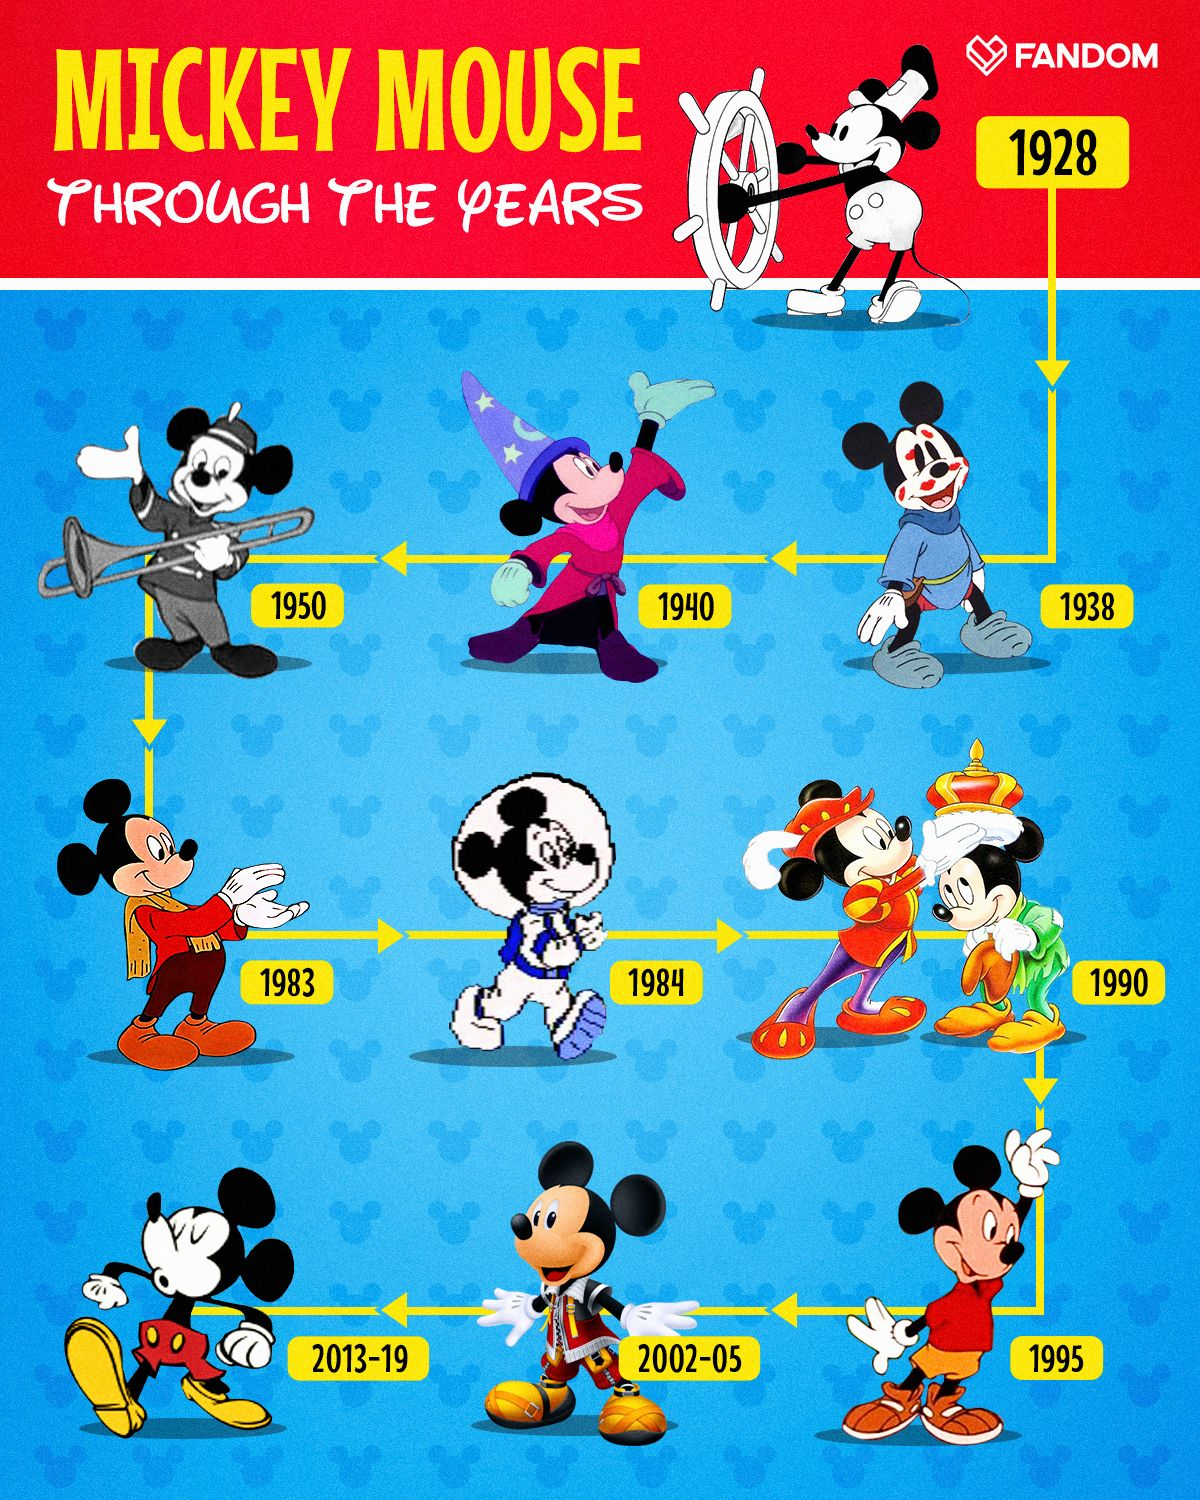 Mickey Mouse in 2020 Mickey mouse cartoon, Mickey